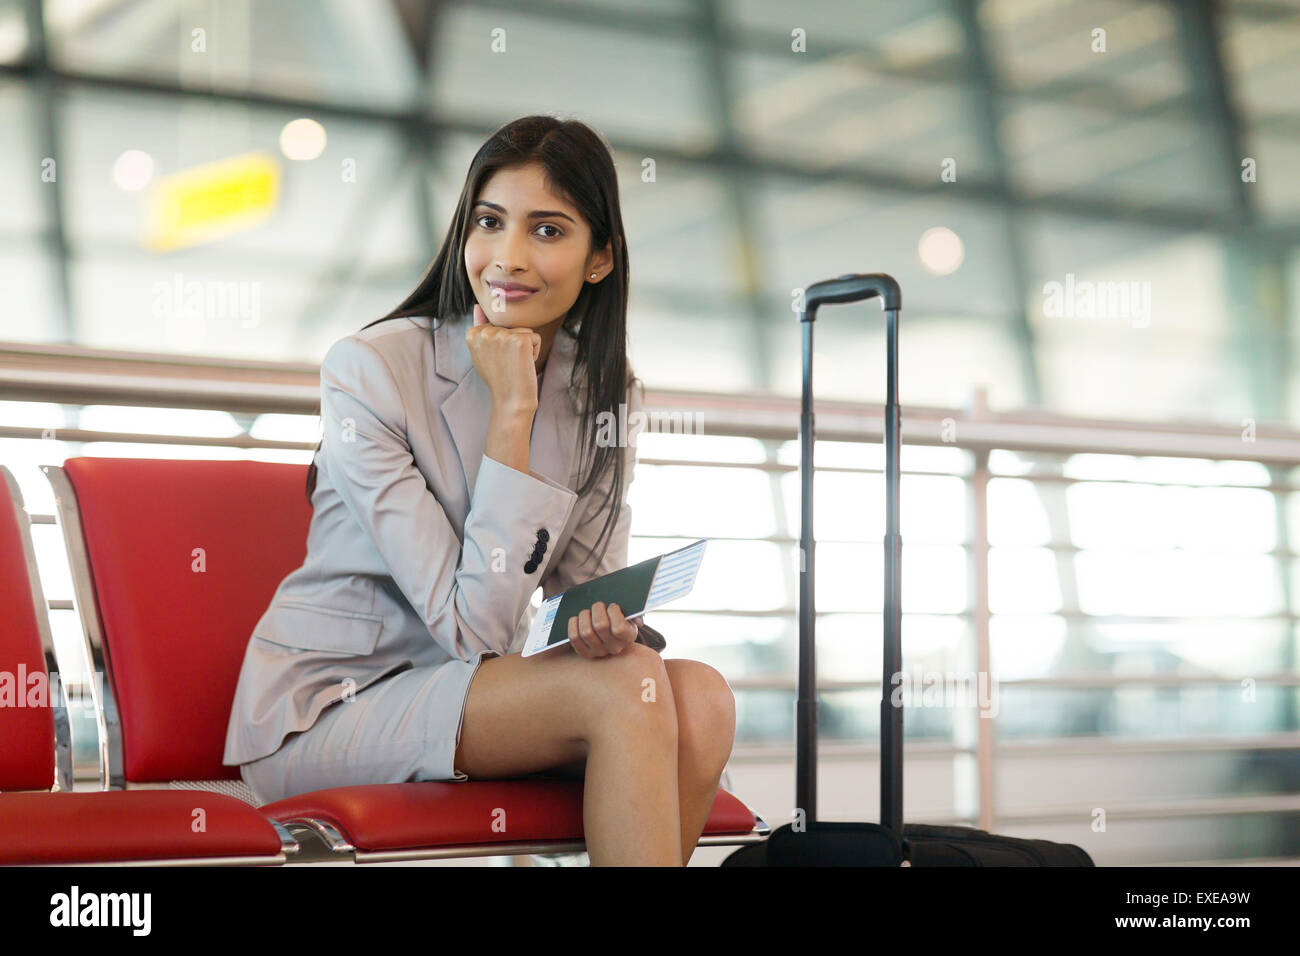 pretty Indian businesswoman waiting at airport for her flight - Stock Image